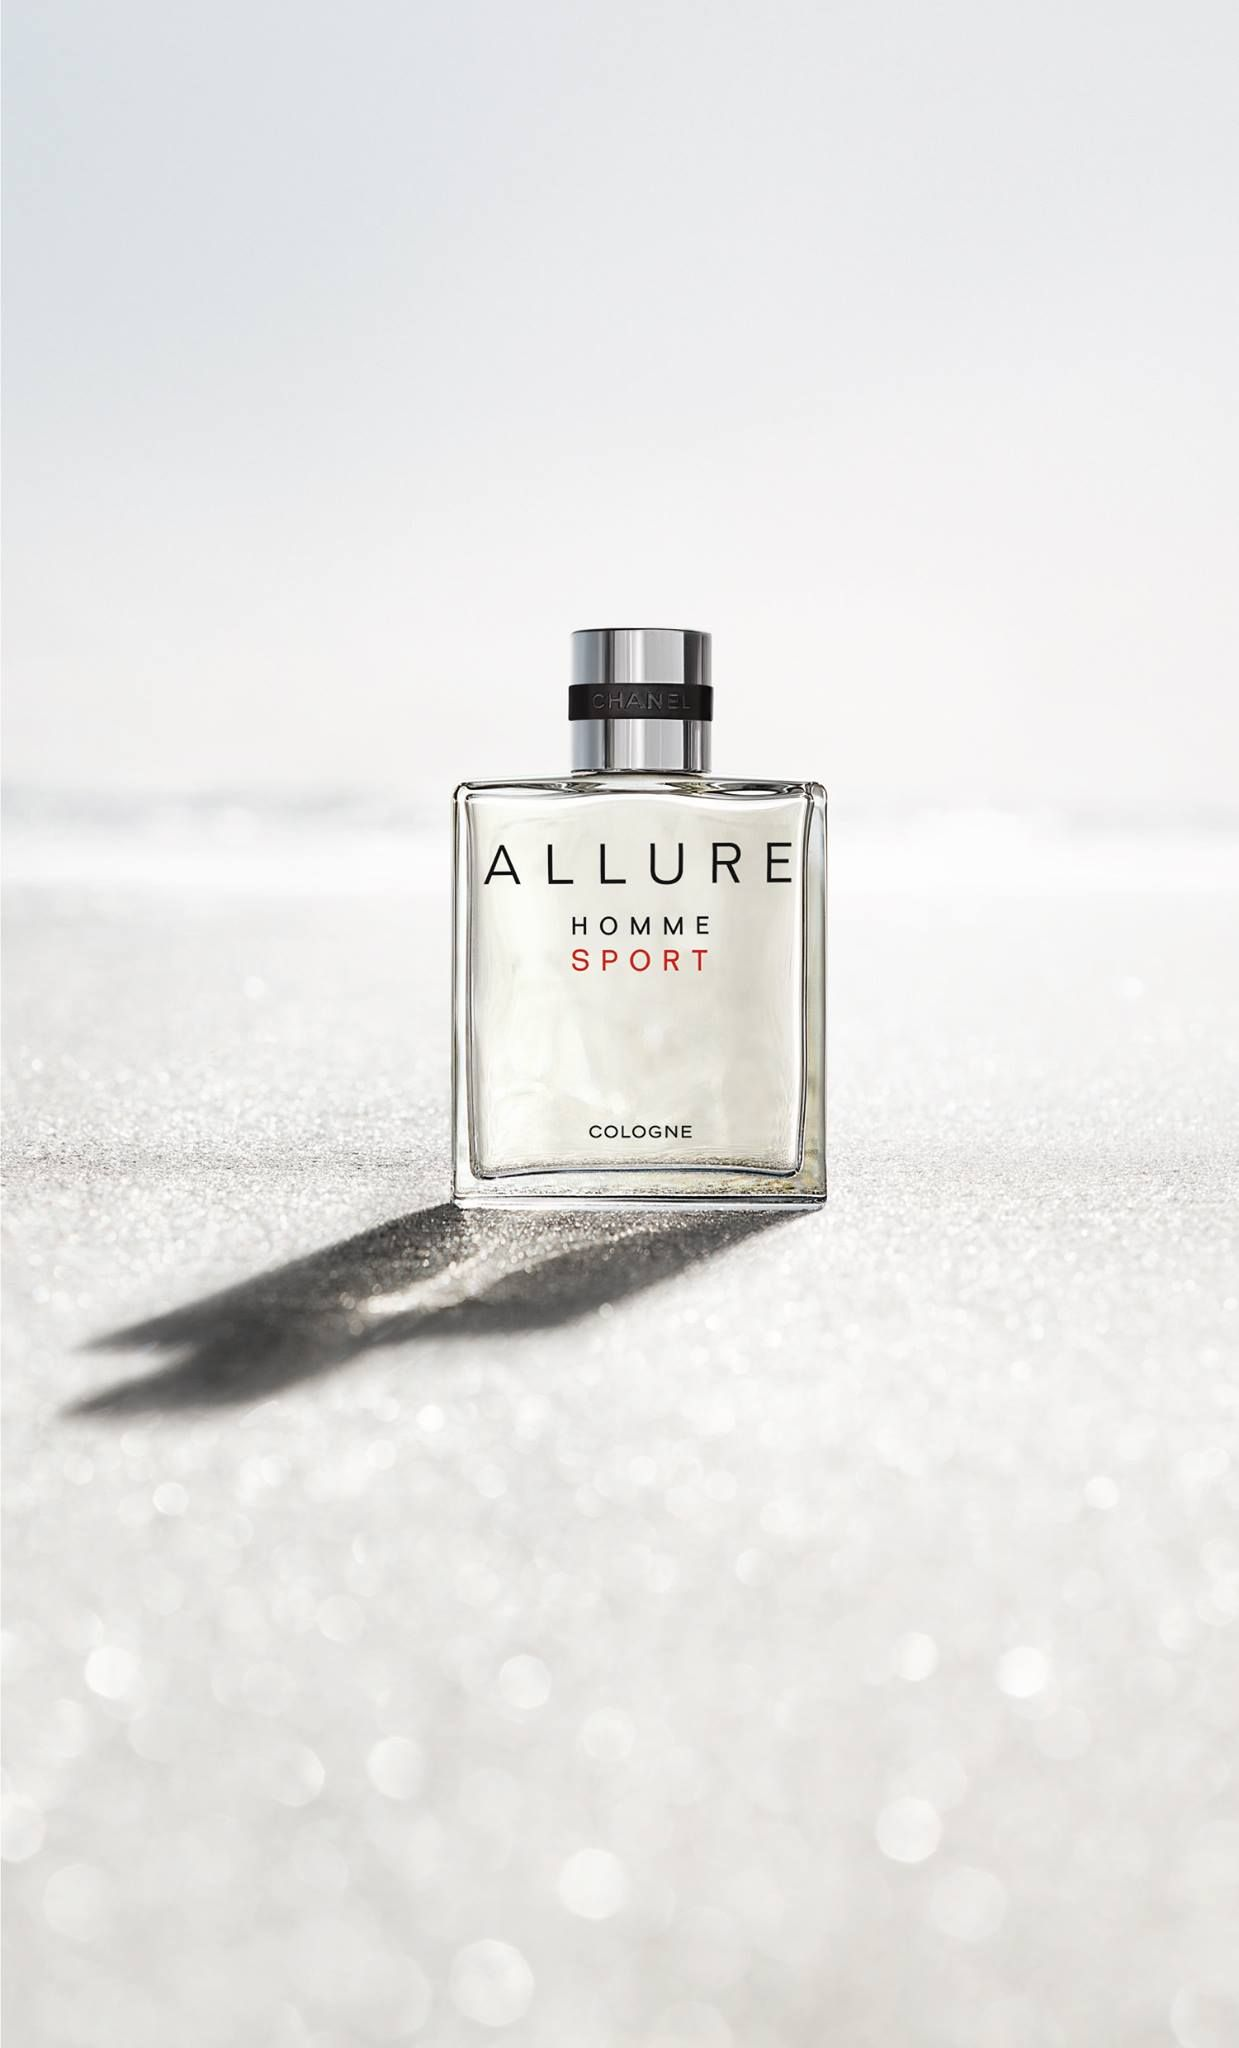 ALLURE HOMME SPORT Cologne is a genuine search of energy that teams the freshness of a Cologne with the persistence of an Eau de Toilette. Timeless and profoundly modern. Find at Franks, The Plaza, Sliema.